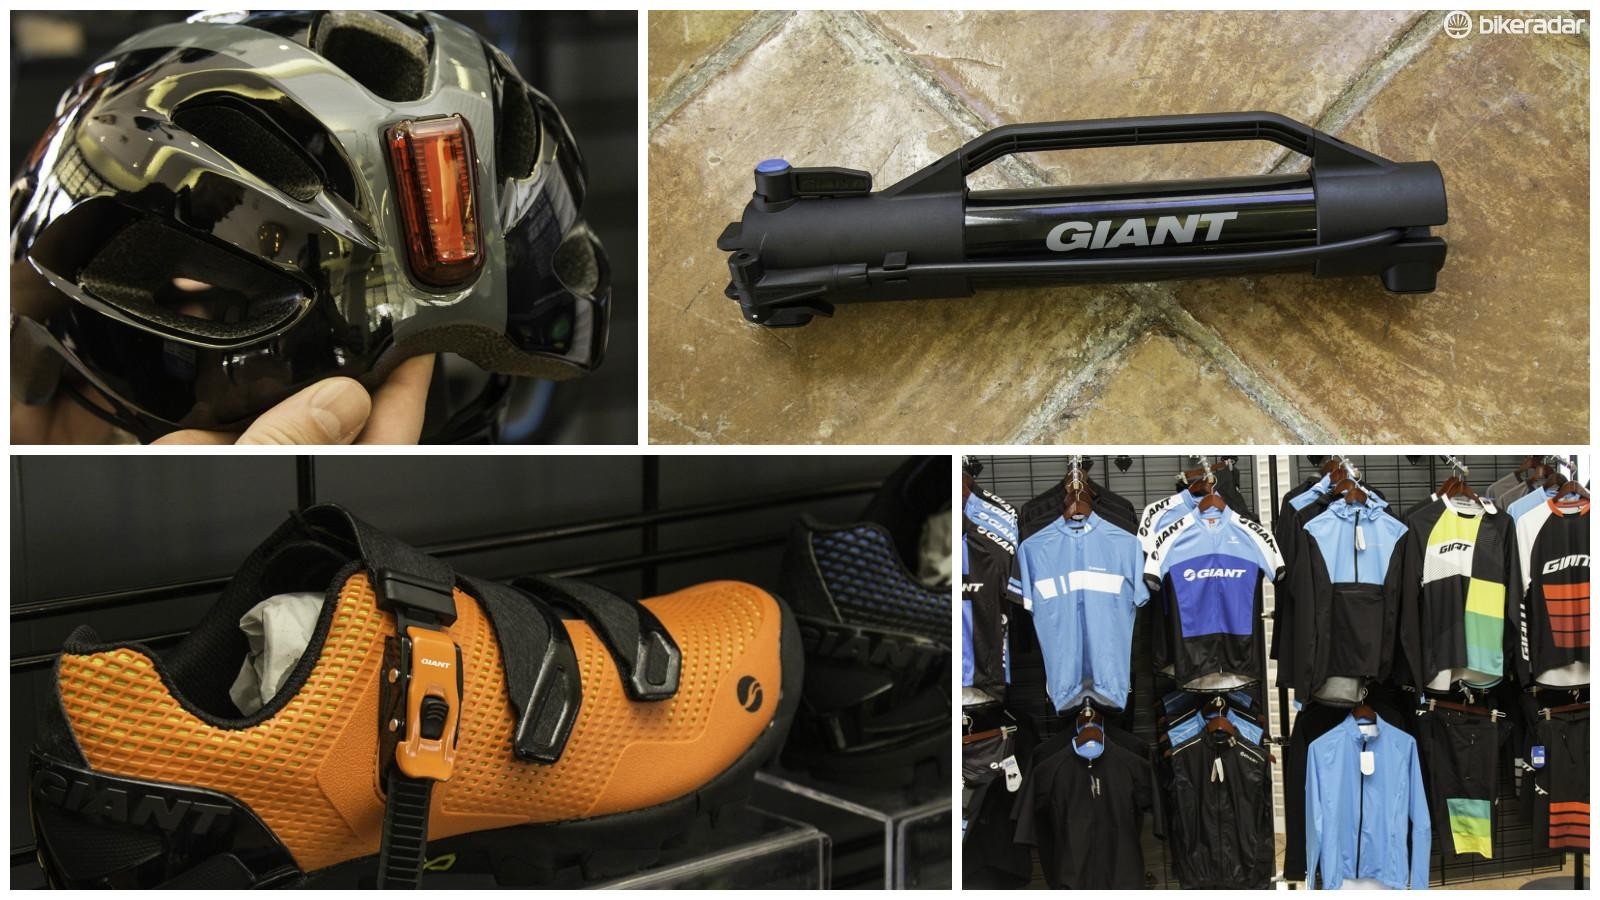 Check out the highlights of Giant's 2017 parts and accessories range